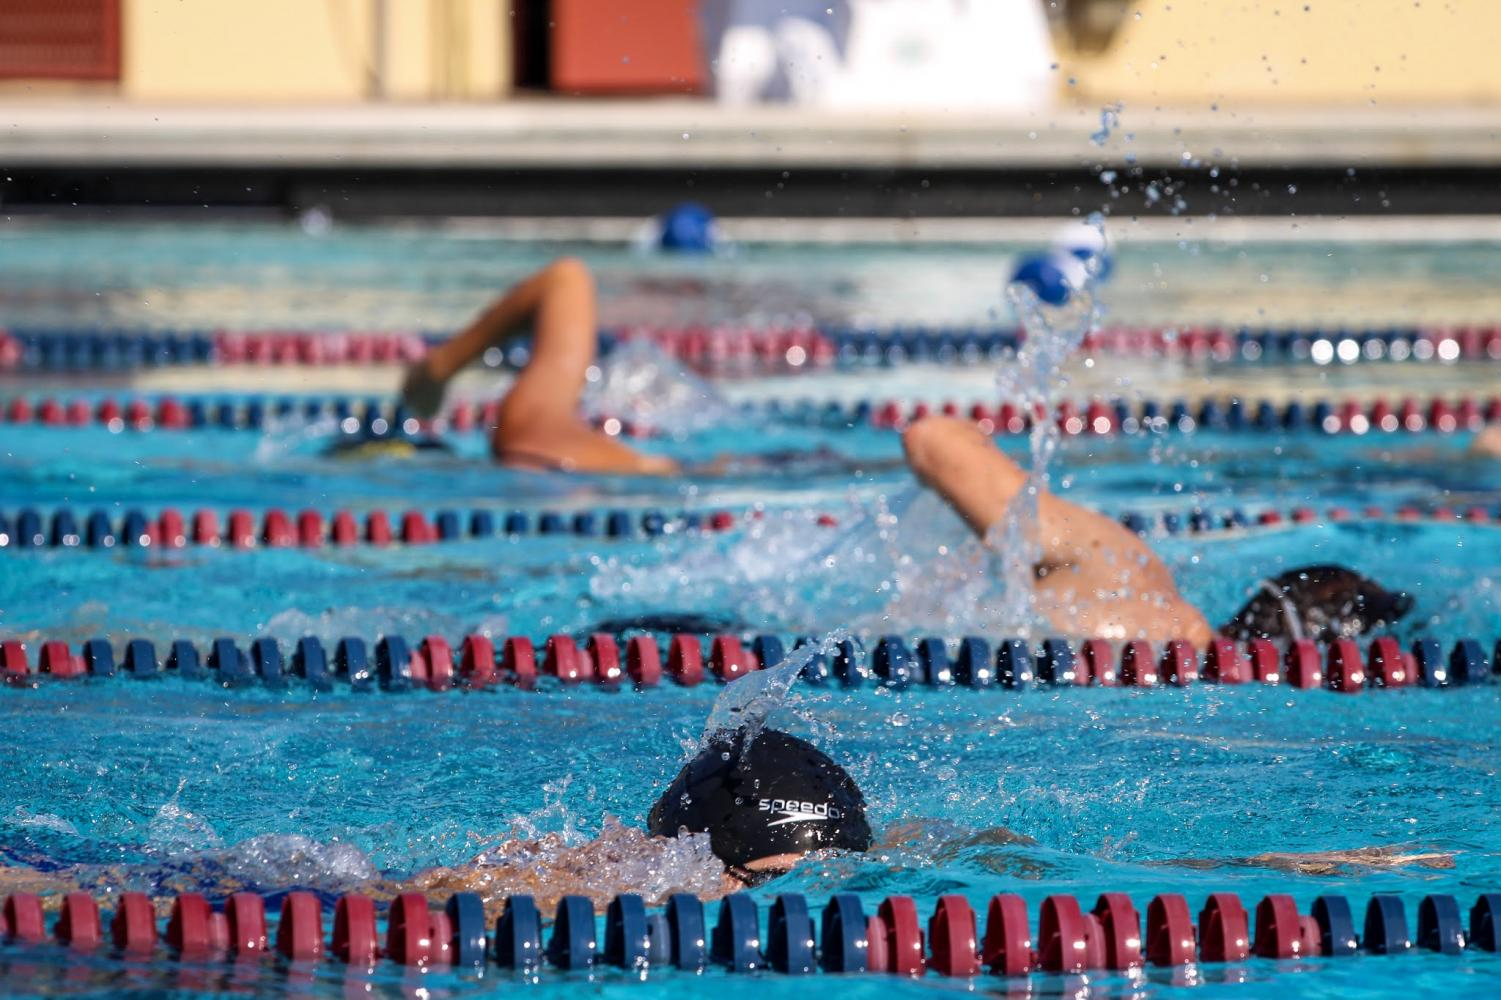 """The swim team practices at Gaines Park in Warren Hawkins Aquatic Center. They train hard for upcoming districts. """"We practice being able to pace ourselves by doing a lot of cardio and endurance training,"""" visual sophomore Julie Akdag said."""